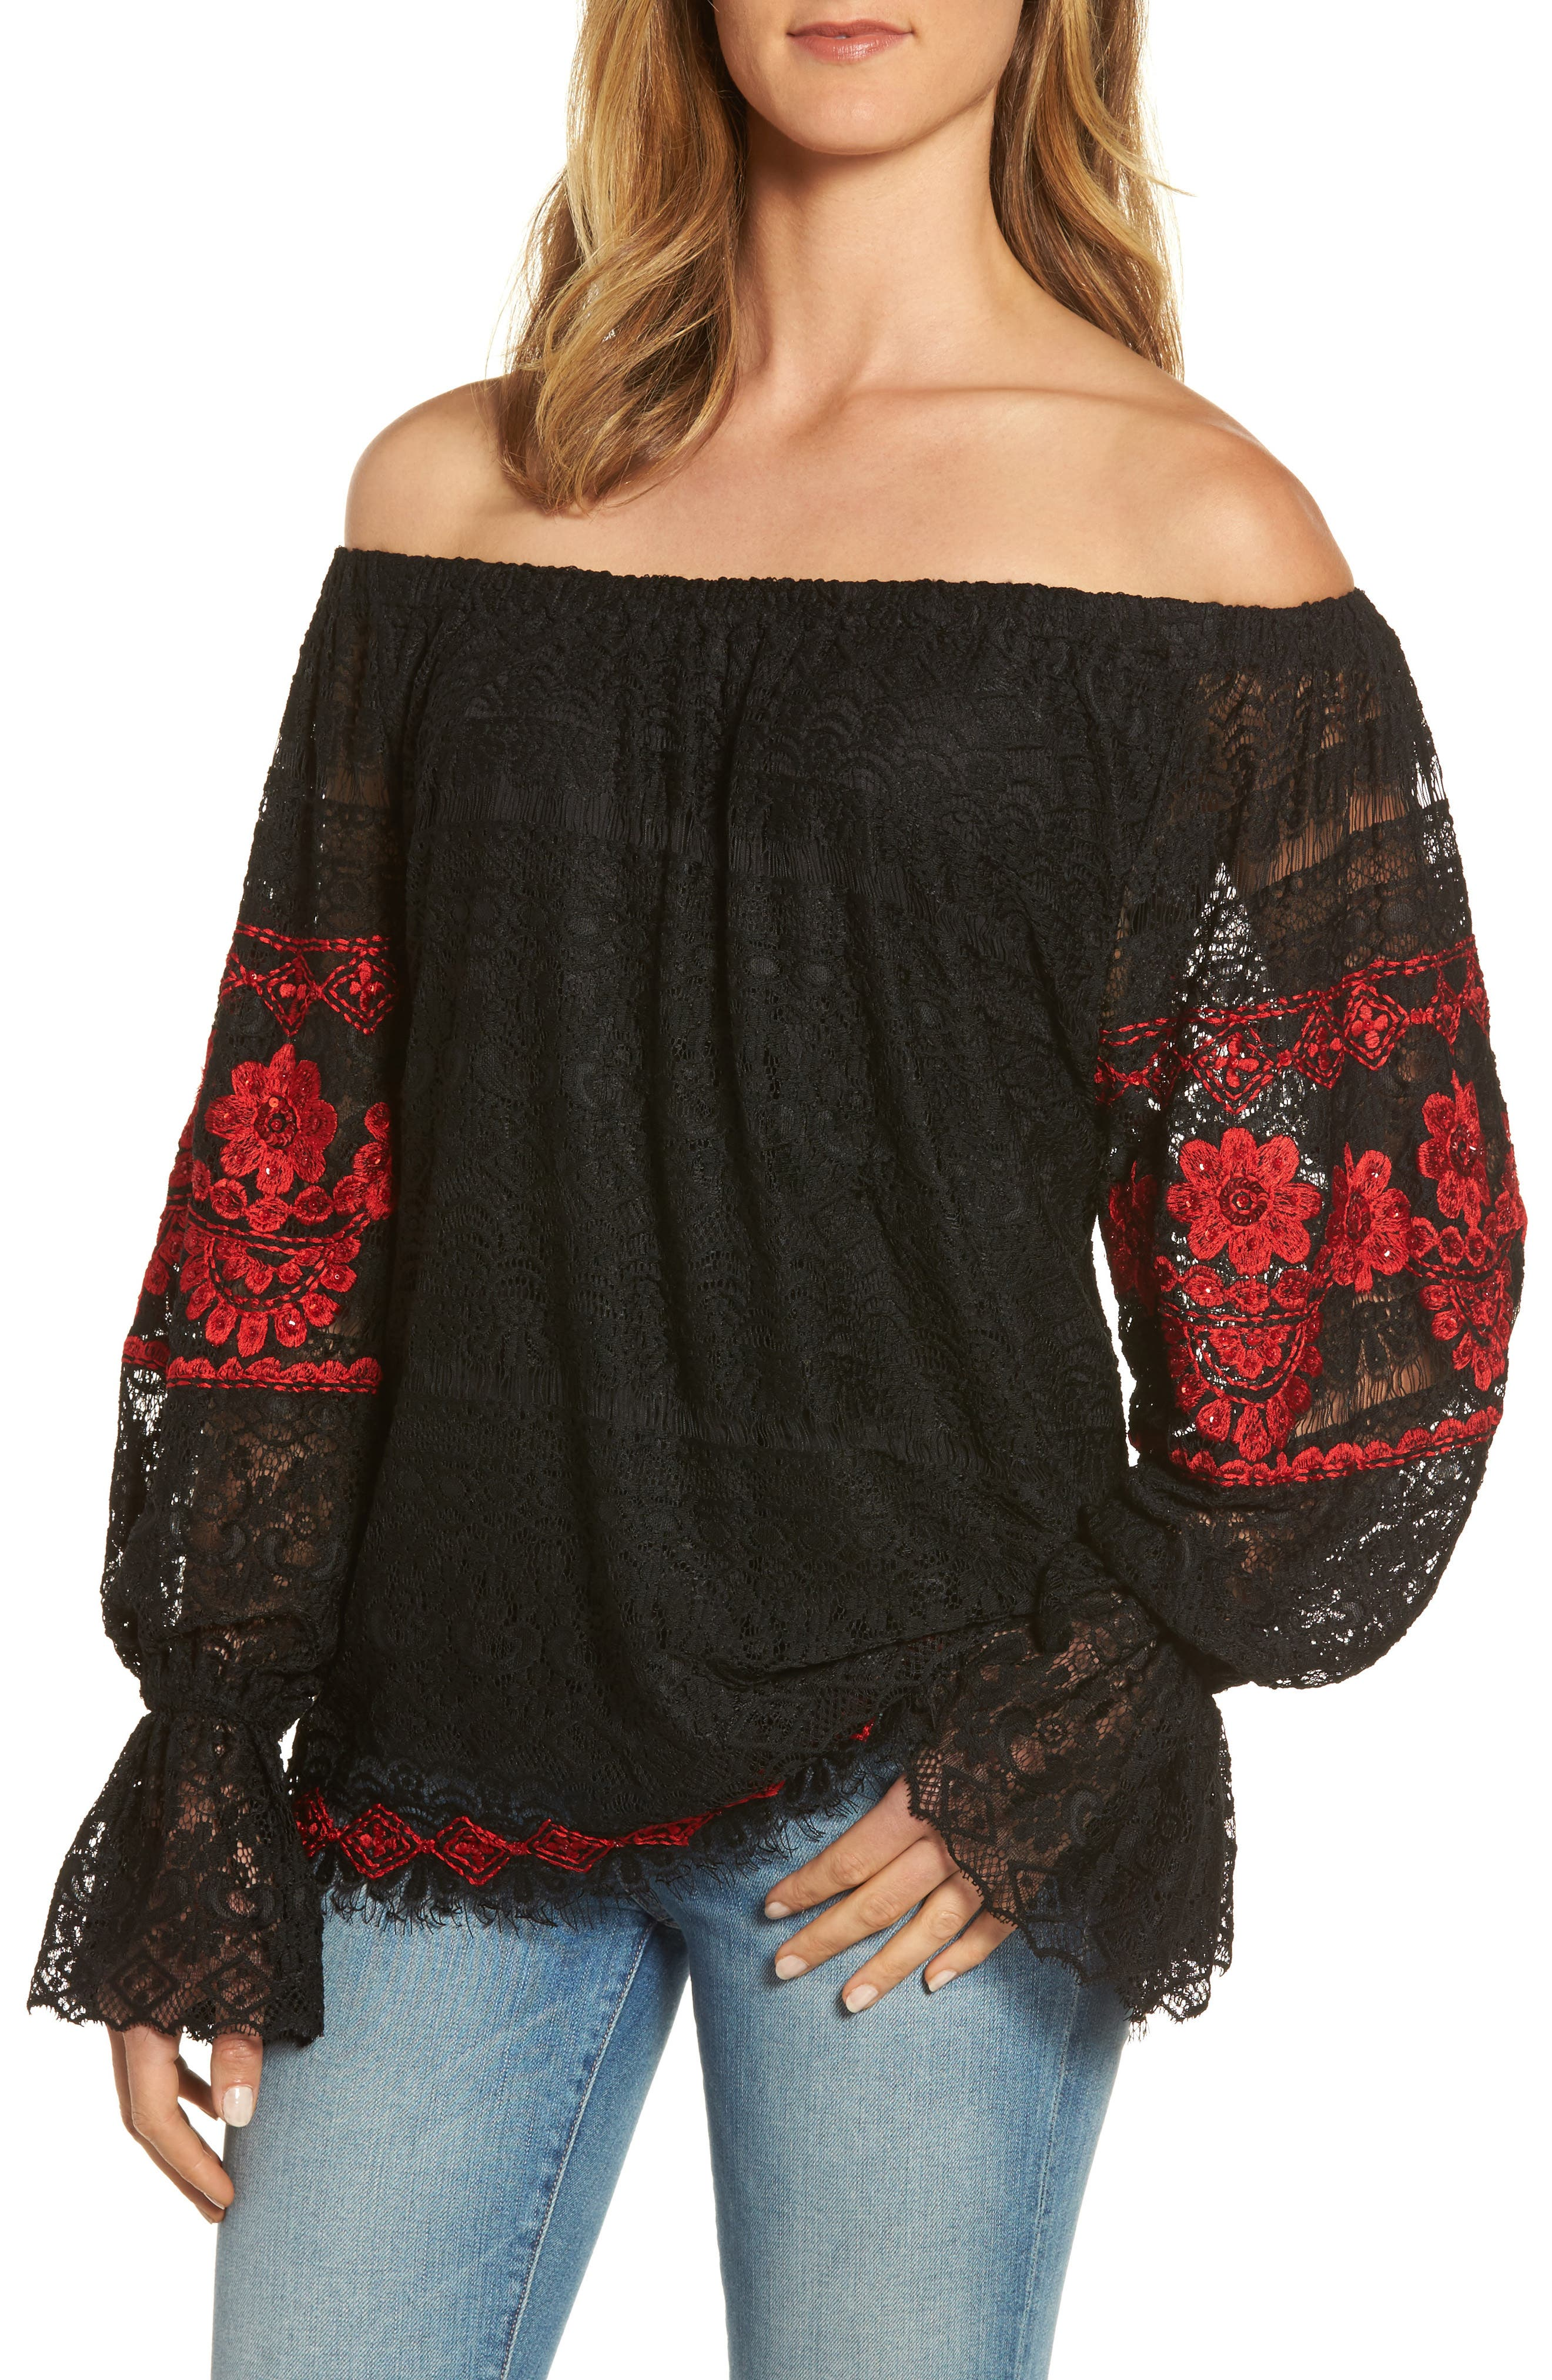 Clare Off the Shoulder Lace Top,                             Main thumbnail 1, color,                             001